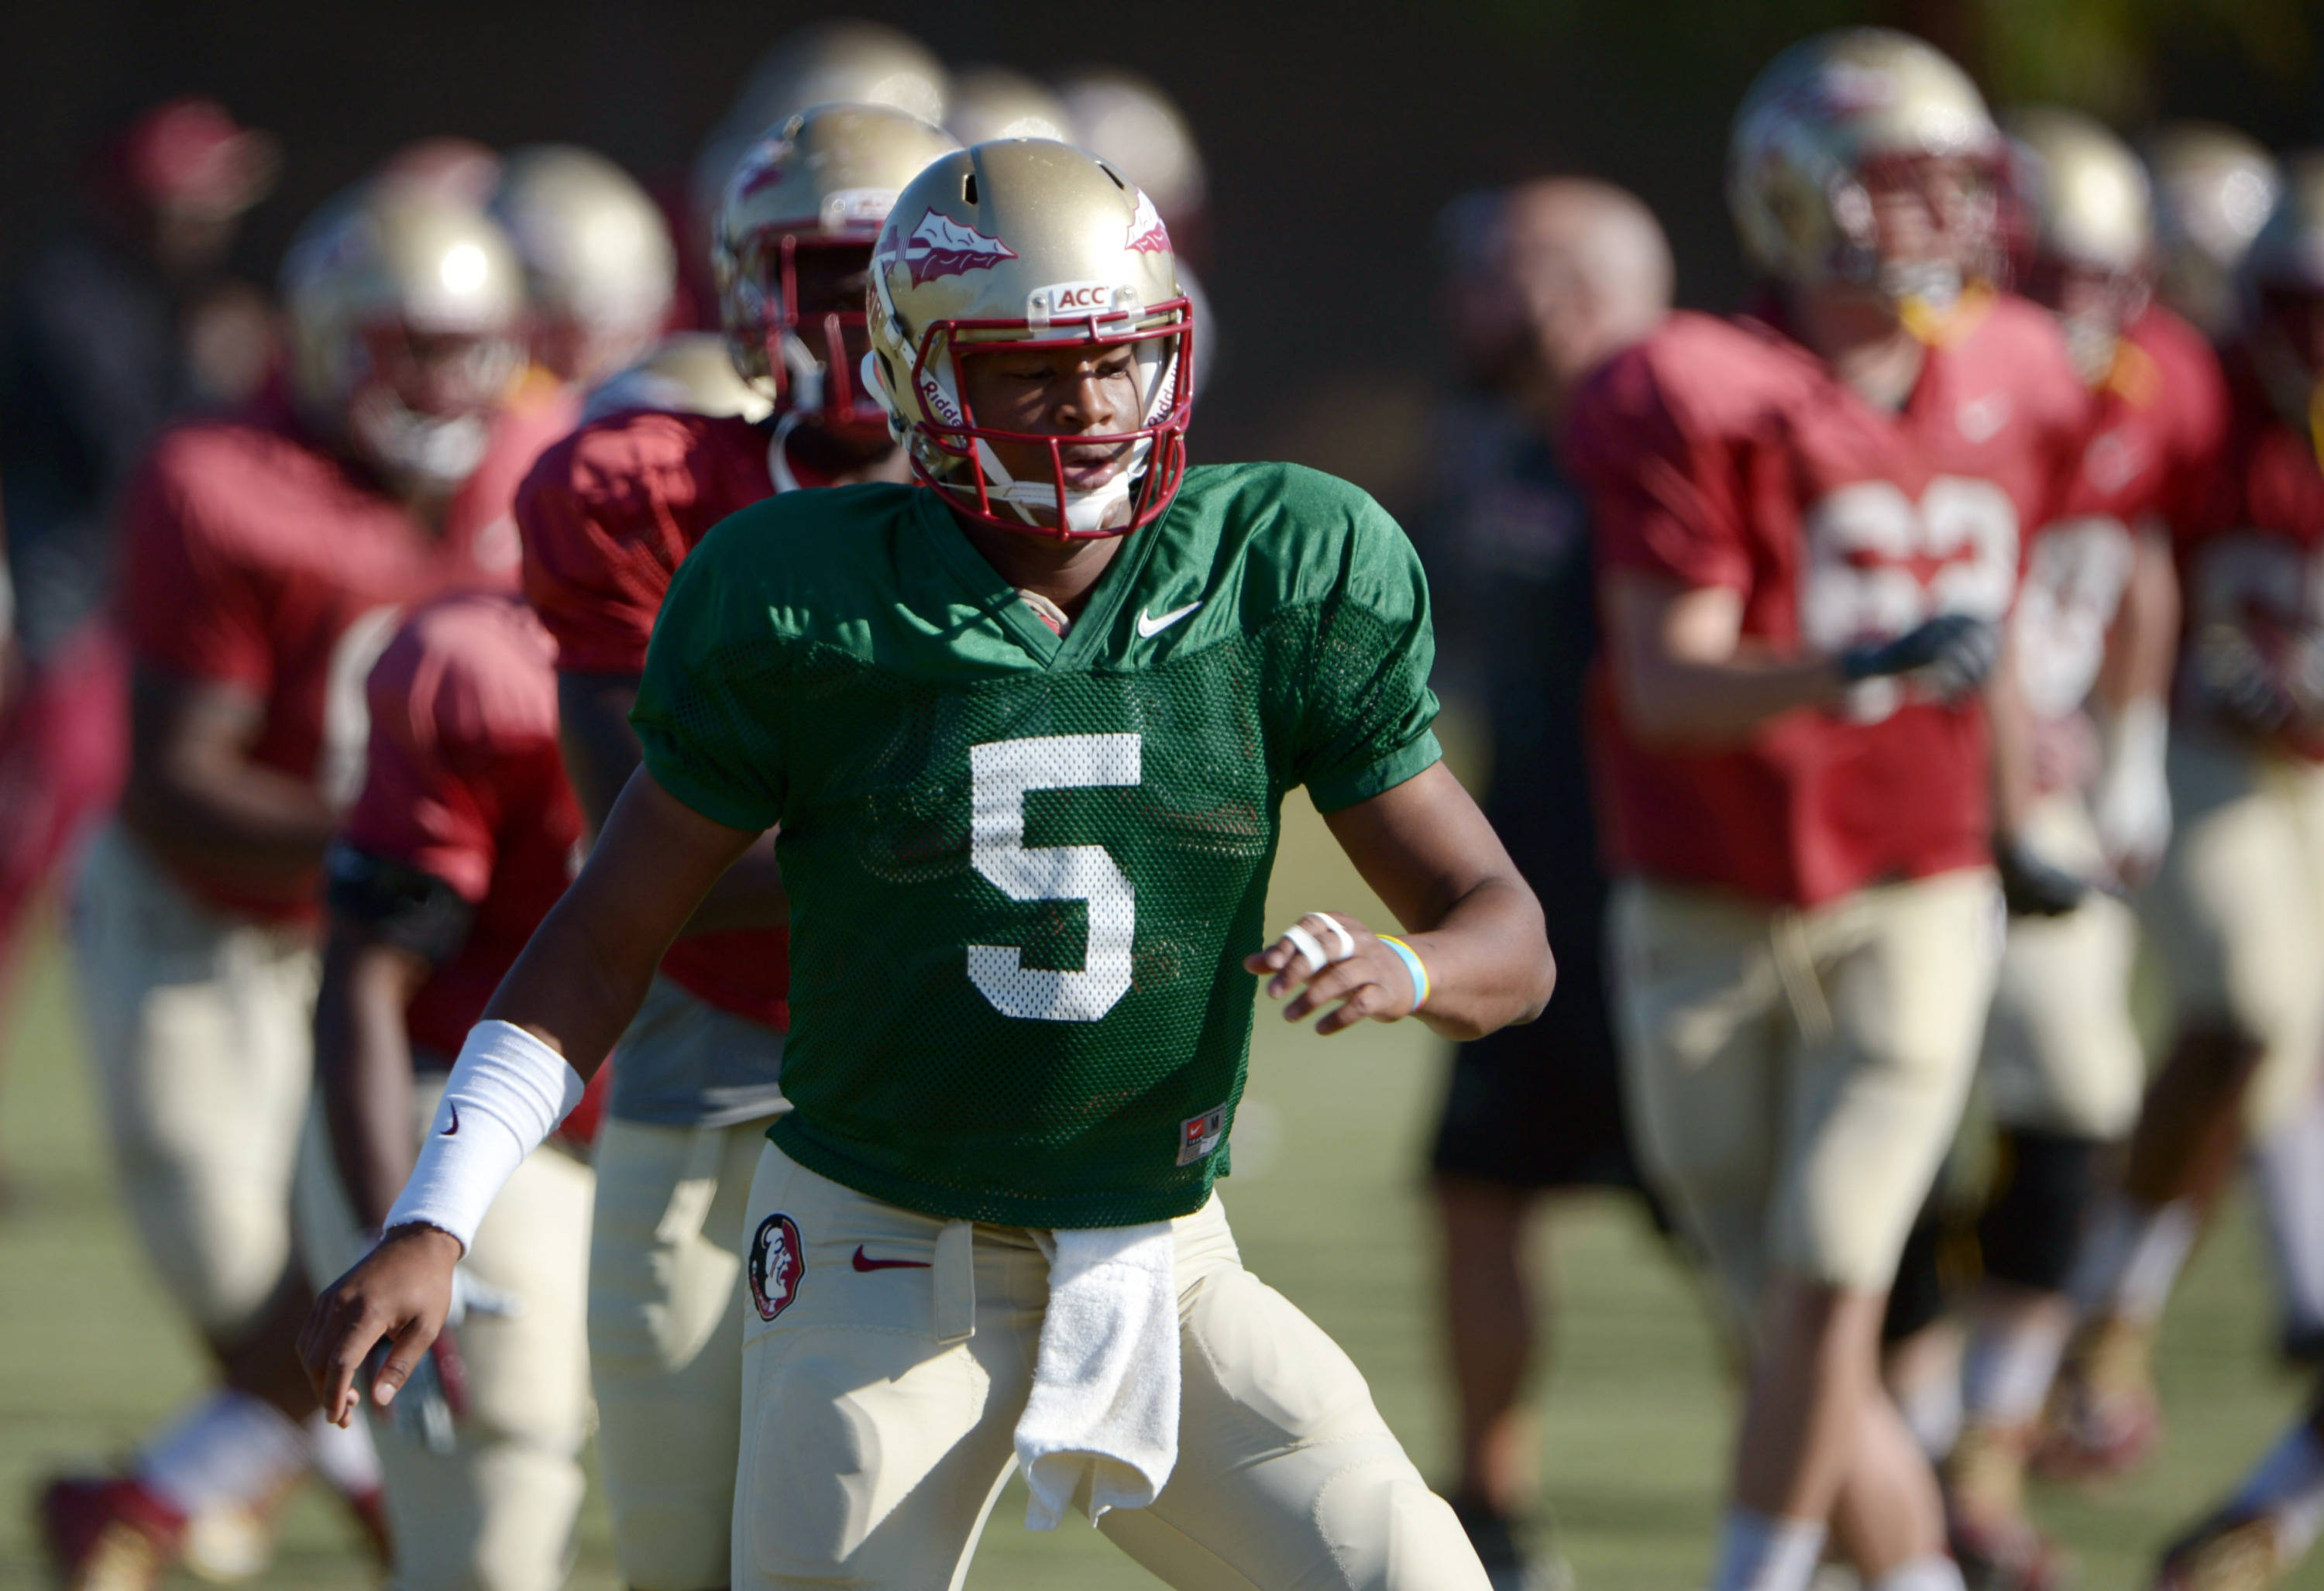 Florida State Seminoles quarterback Jameis Winston (5) stretches at practice for the 2014 BCS National Championship against the Auburn Tigers. Mandatory Credit: Kirby Lee-USA TODAY Sports